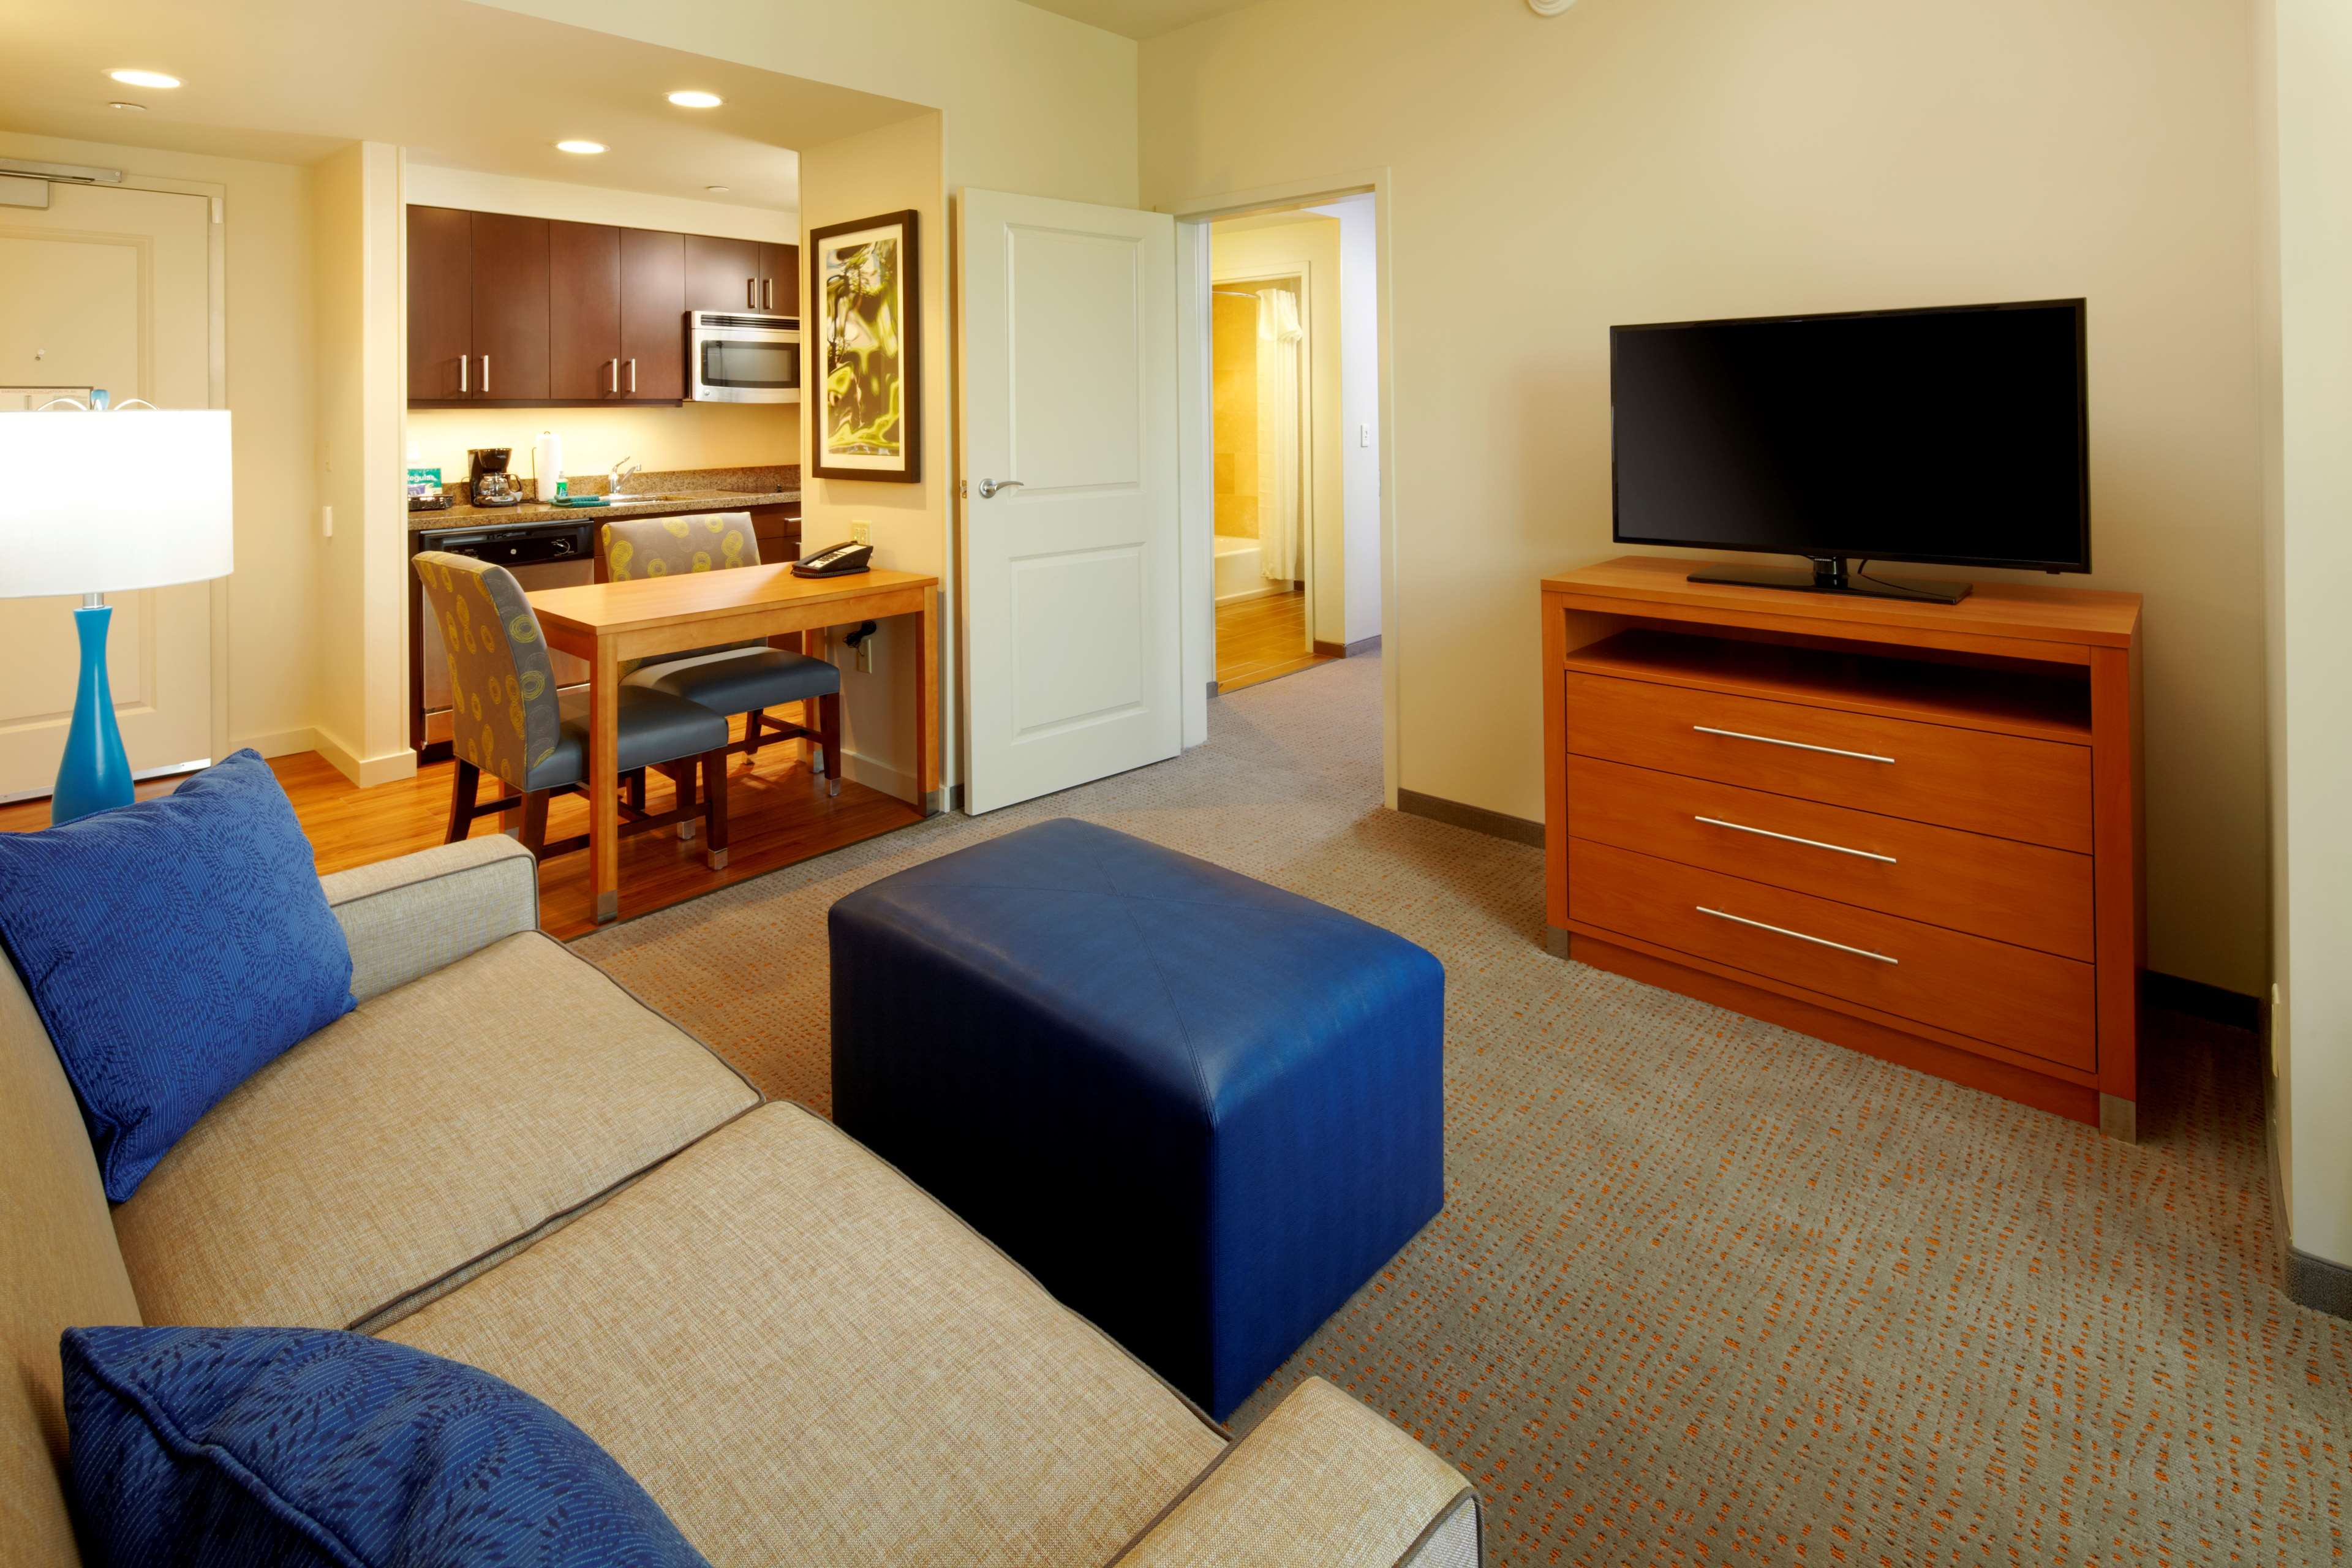 Homewood Suites by Hilton Pittsburgh Airport Robinson Mall Area PA image 18